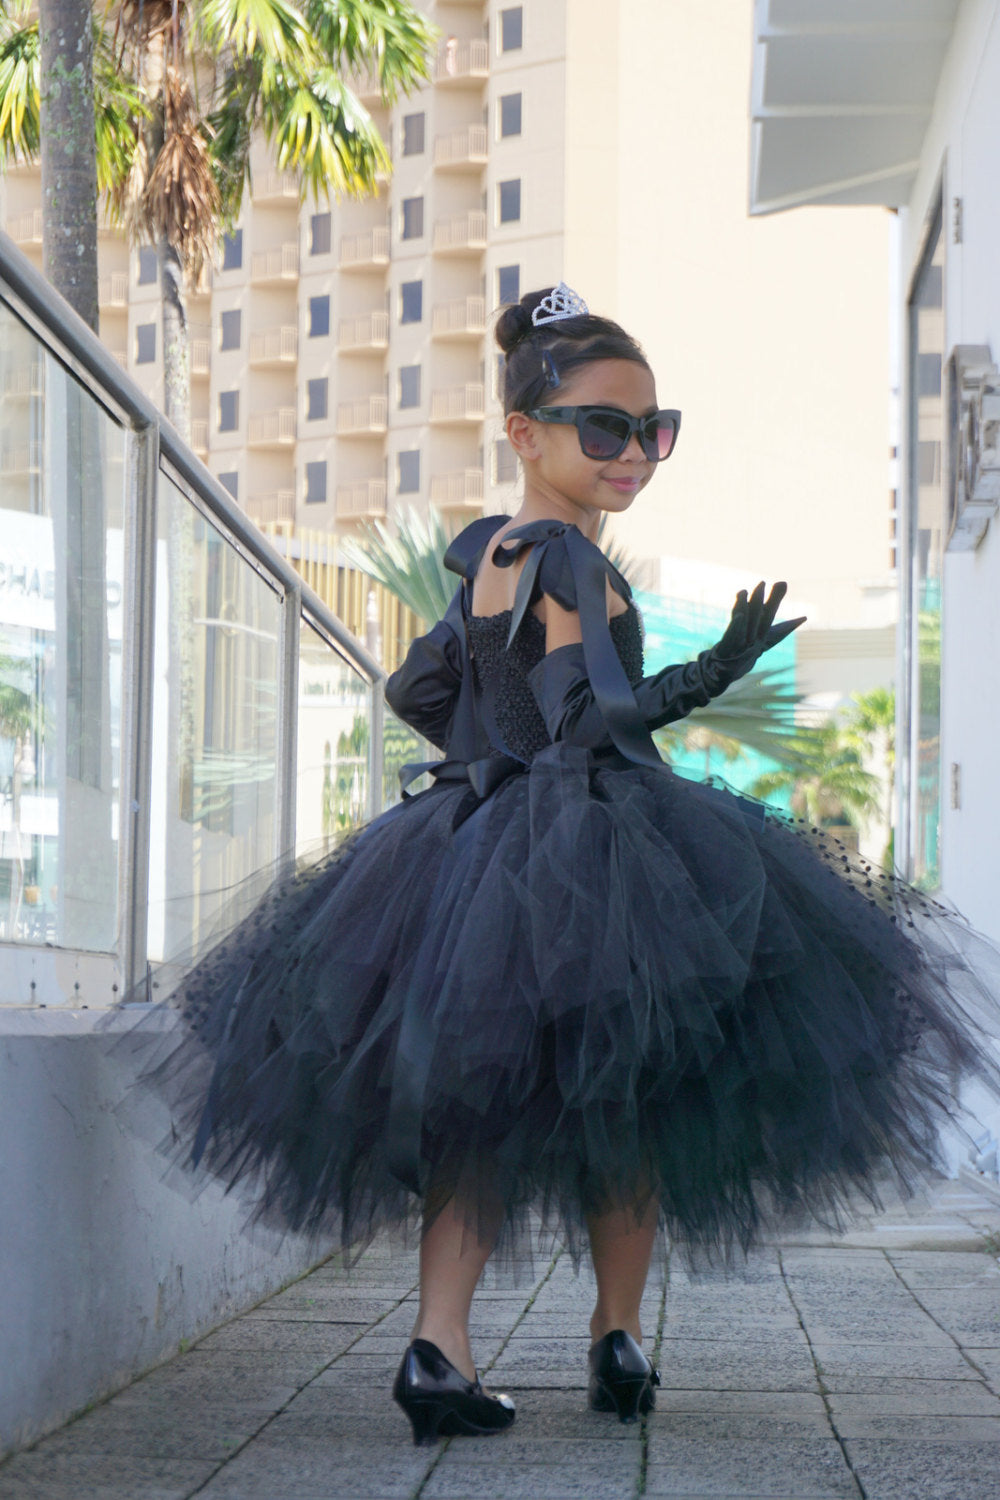 Black Audrey Hepburn Breakfast at Tiffany's Inspired Little Girl Party Dress